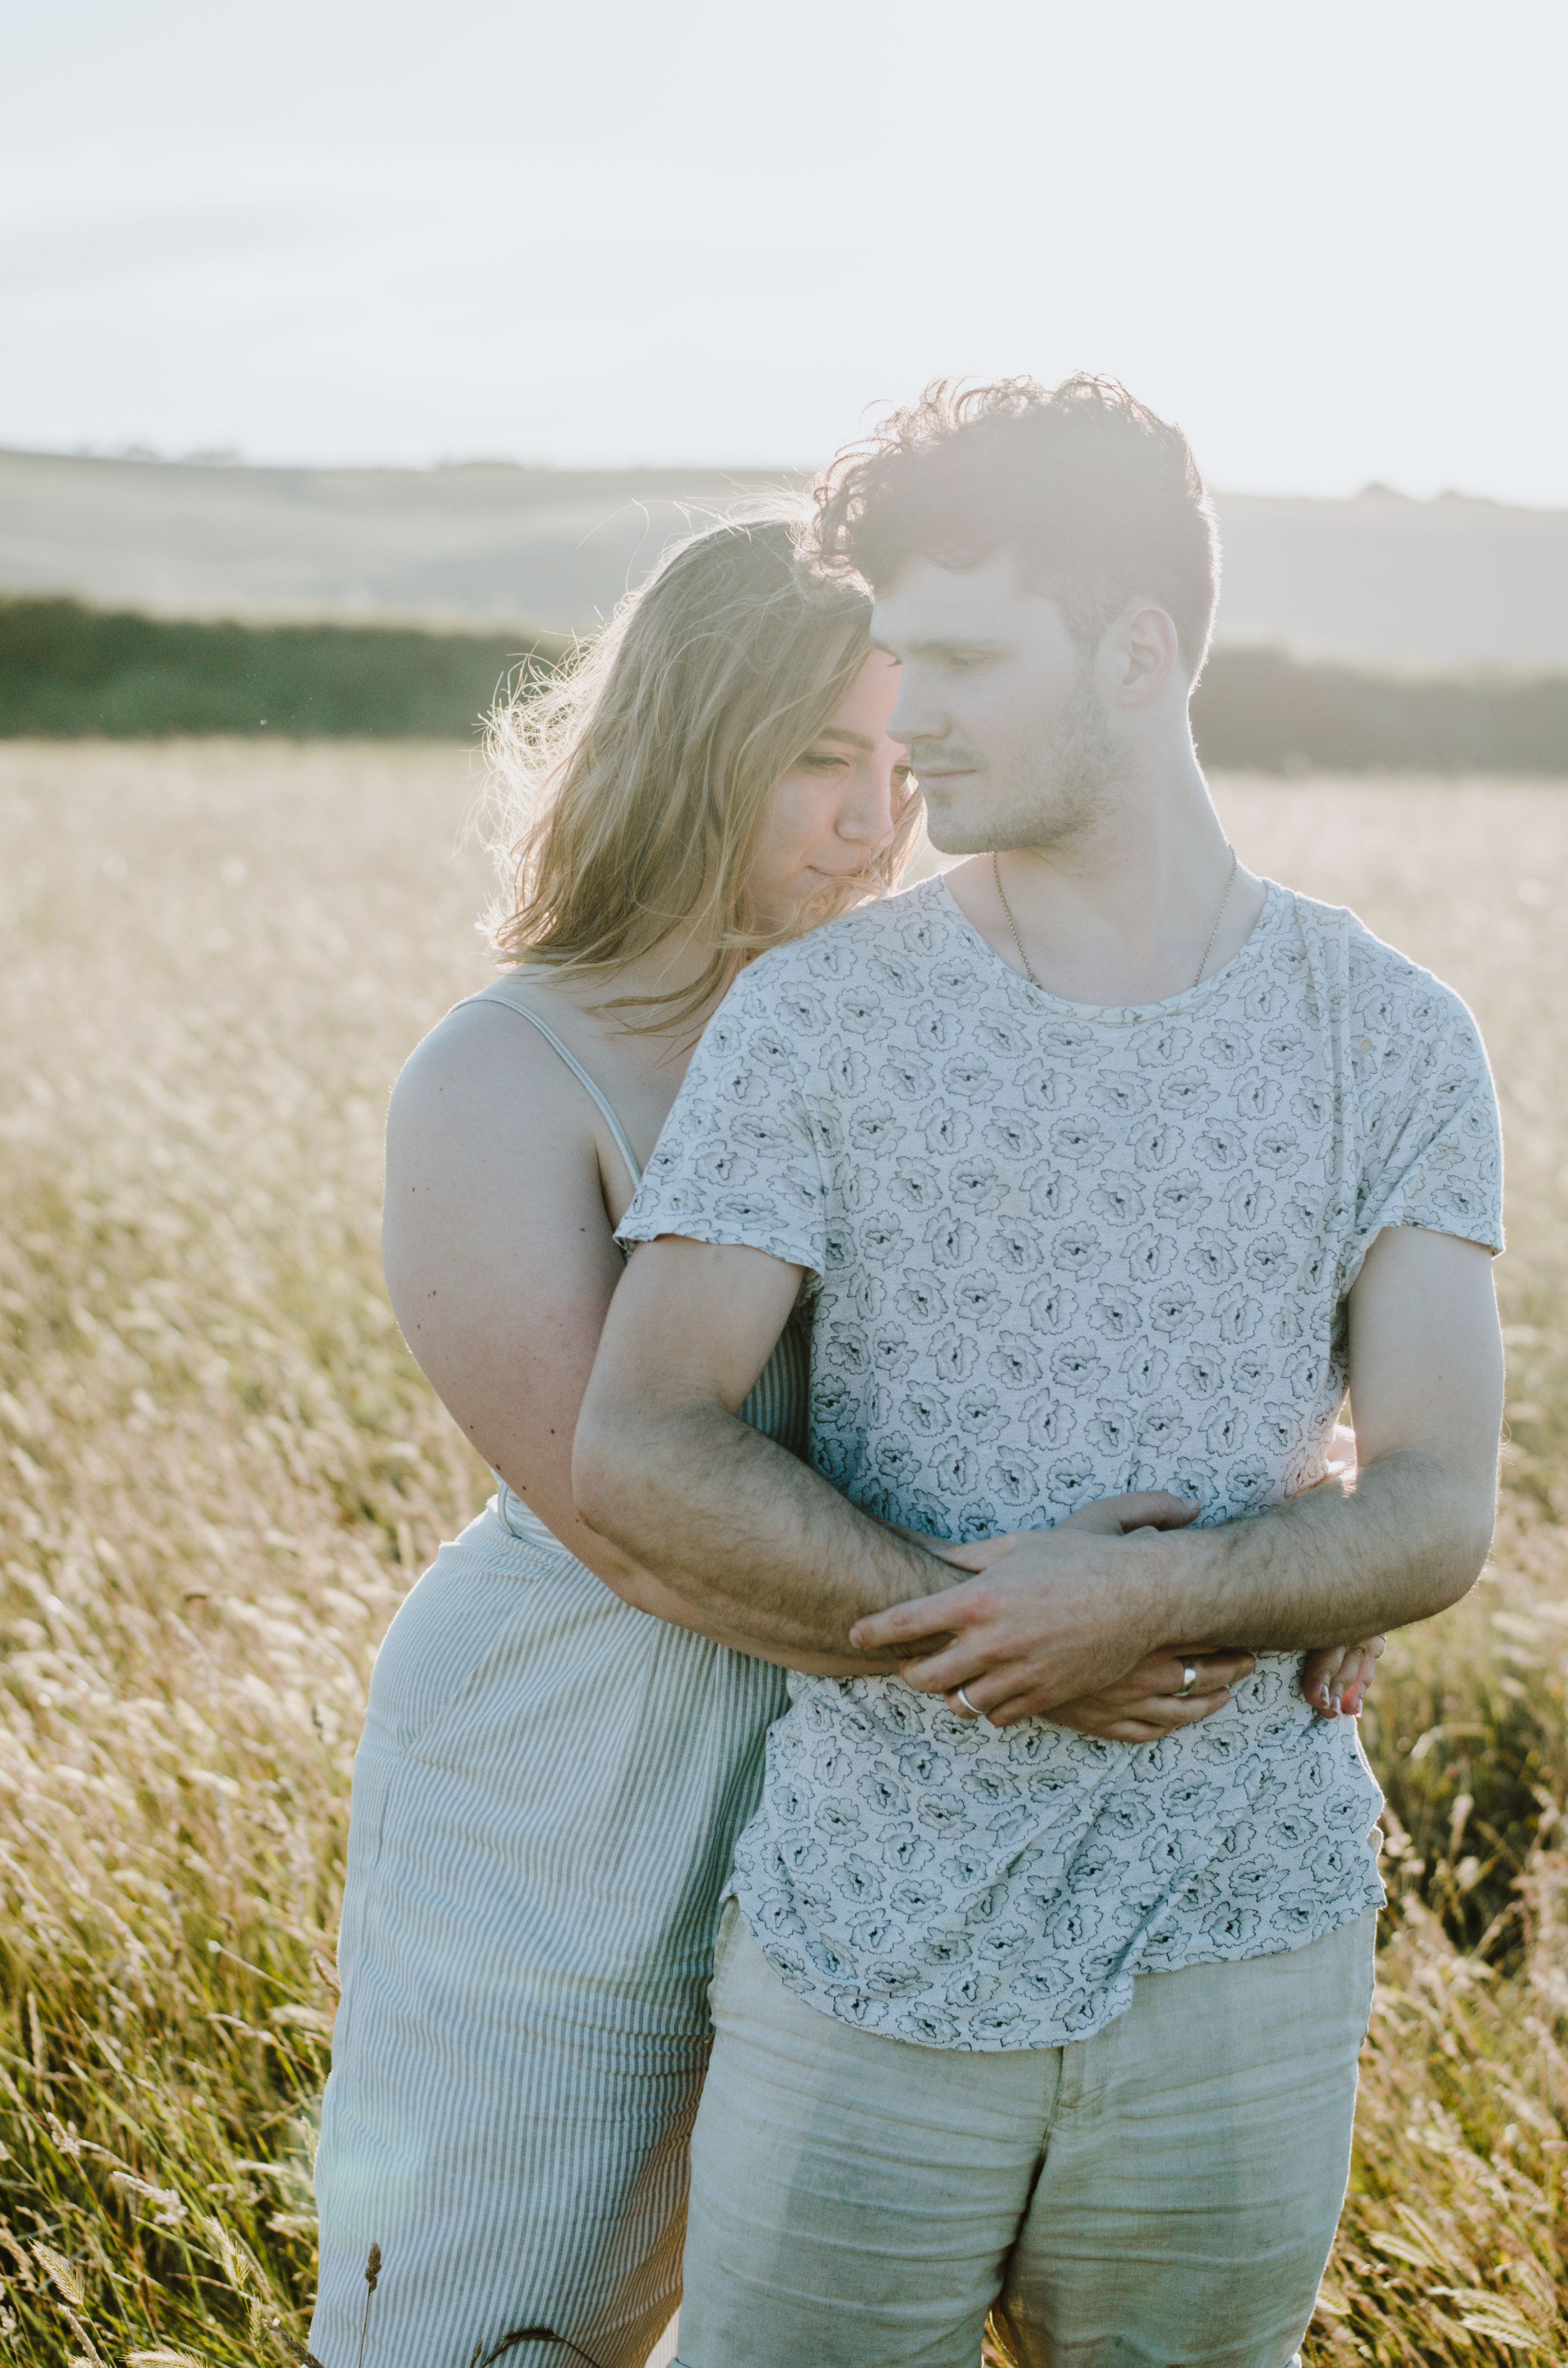 Rebecca & Dougie - Cuckmere Haven - Couple Session - Aiste Saulyte Photography-6.jpg